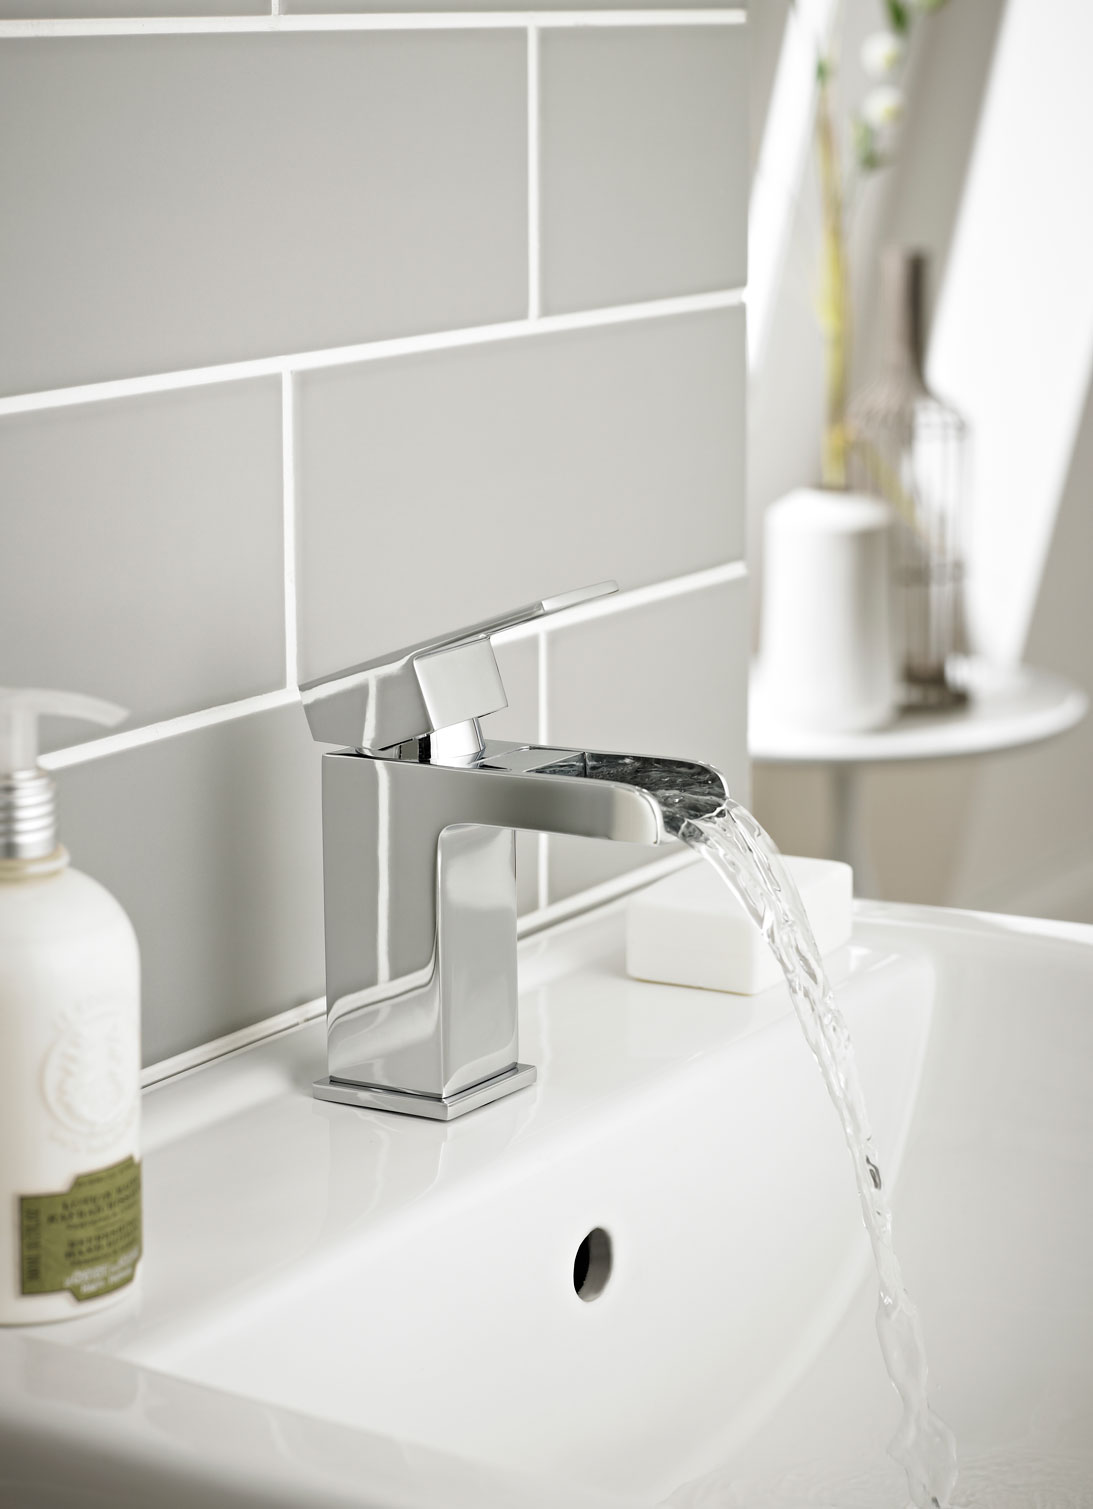 Elton Mono Basin Mixer With Clicker Waste